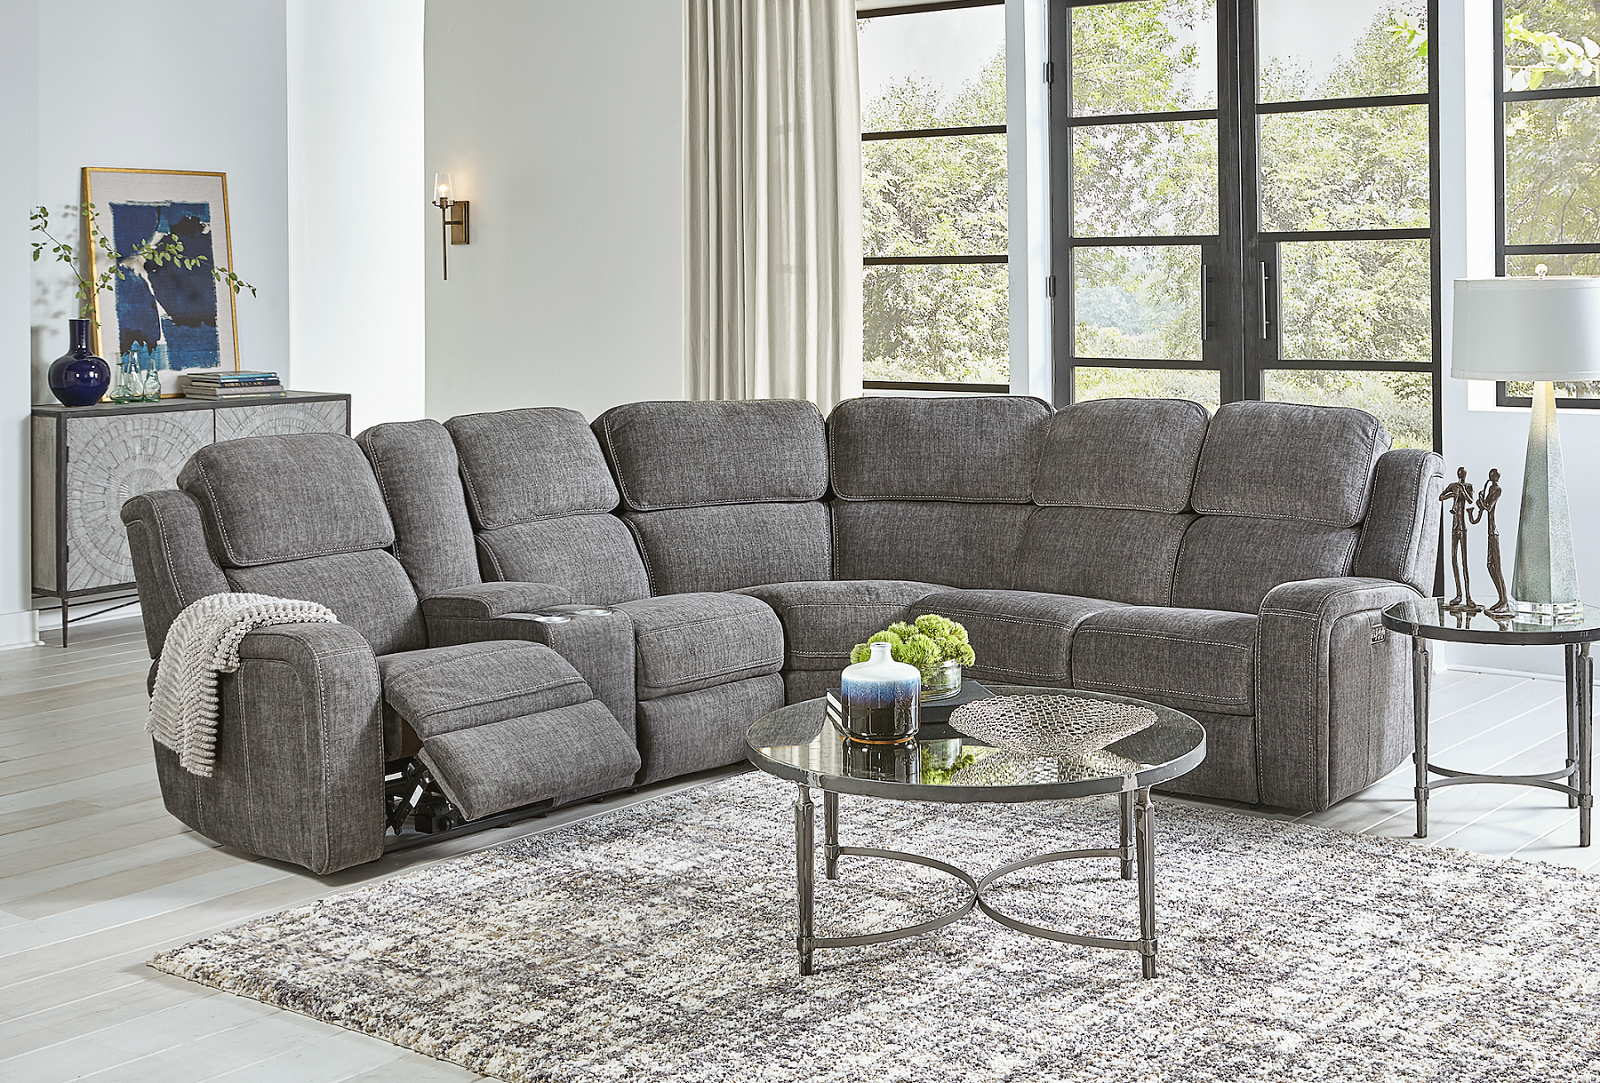 Couch Potato Home Accents and Furniture